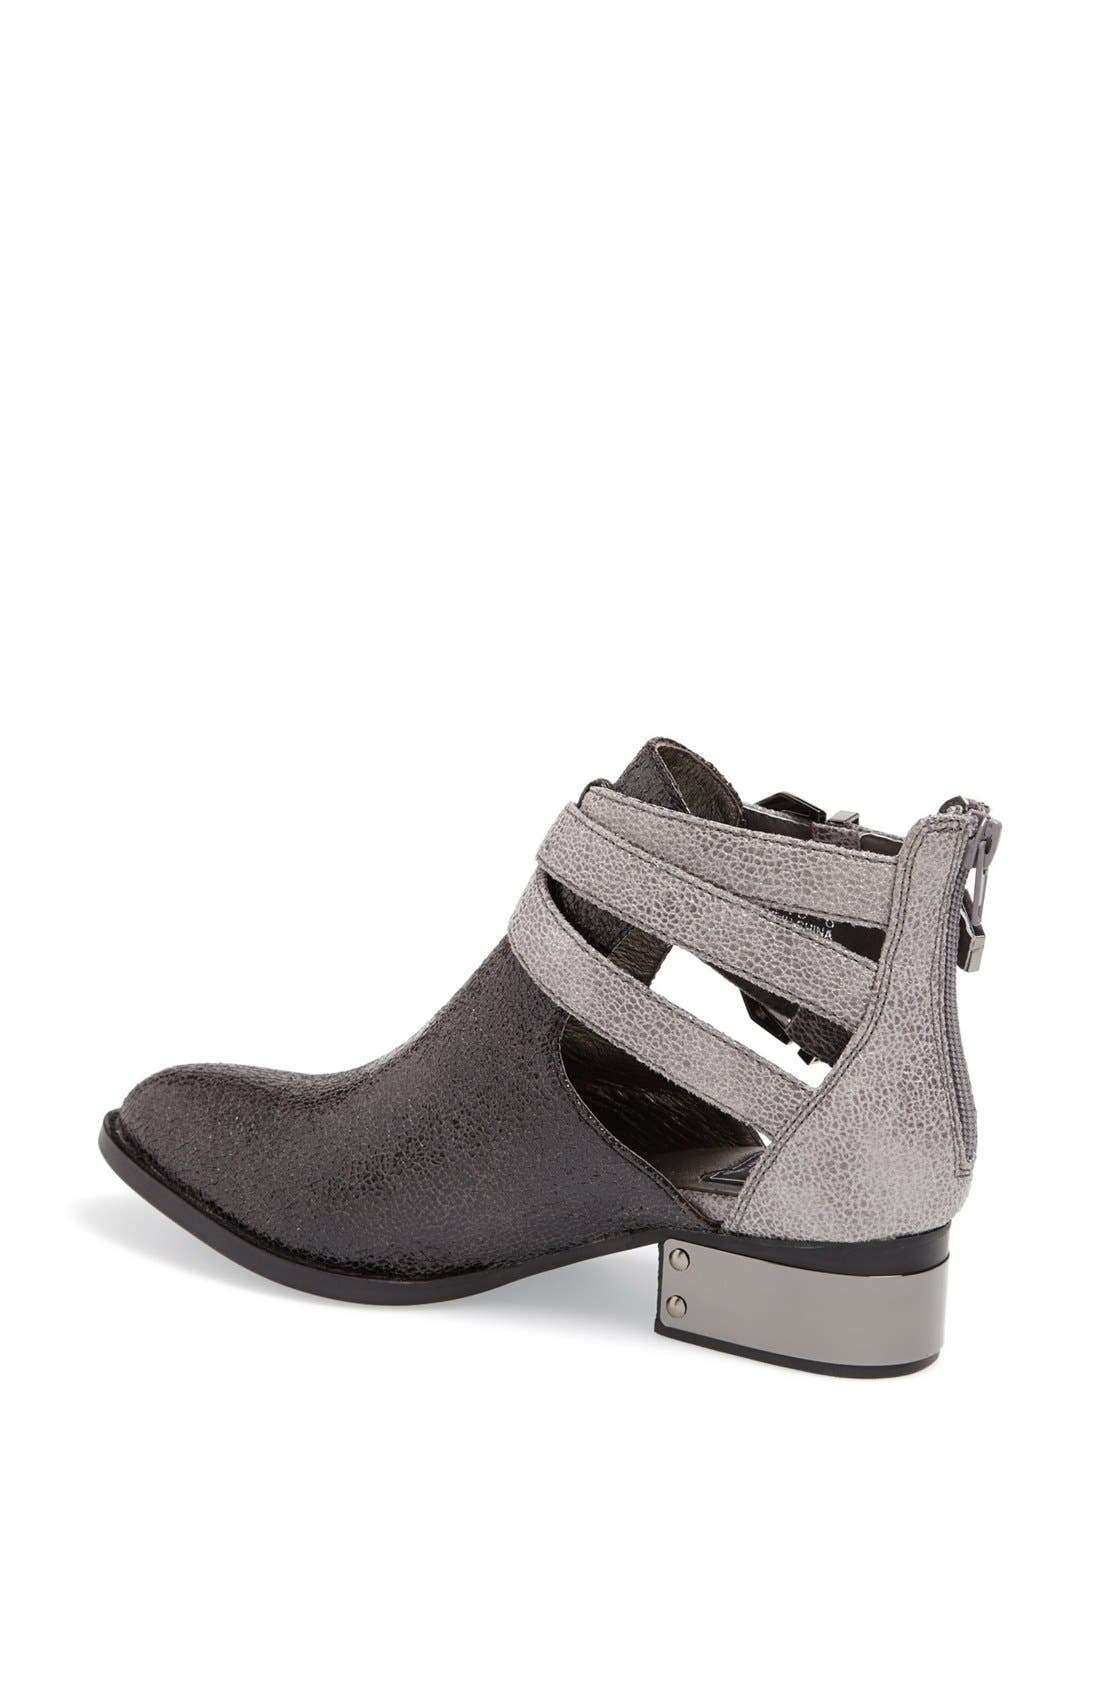 'Everly' Bootie,                             Alternate thumbnail 2, color,                             Grey Cracked Combo